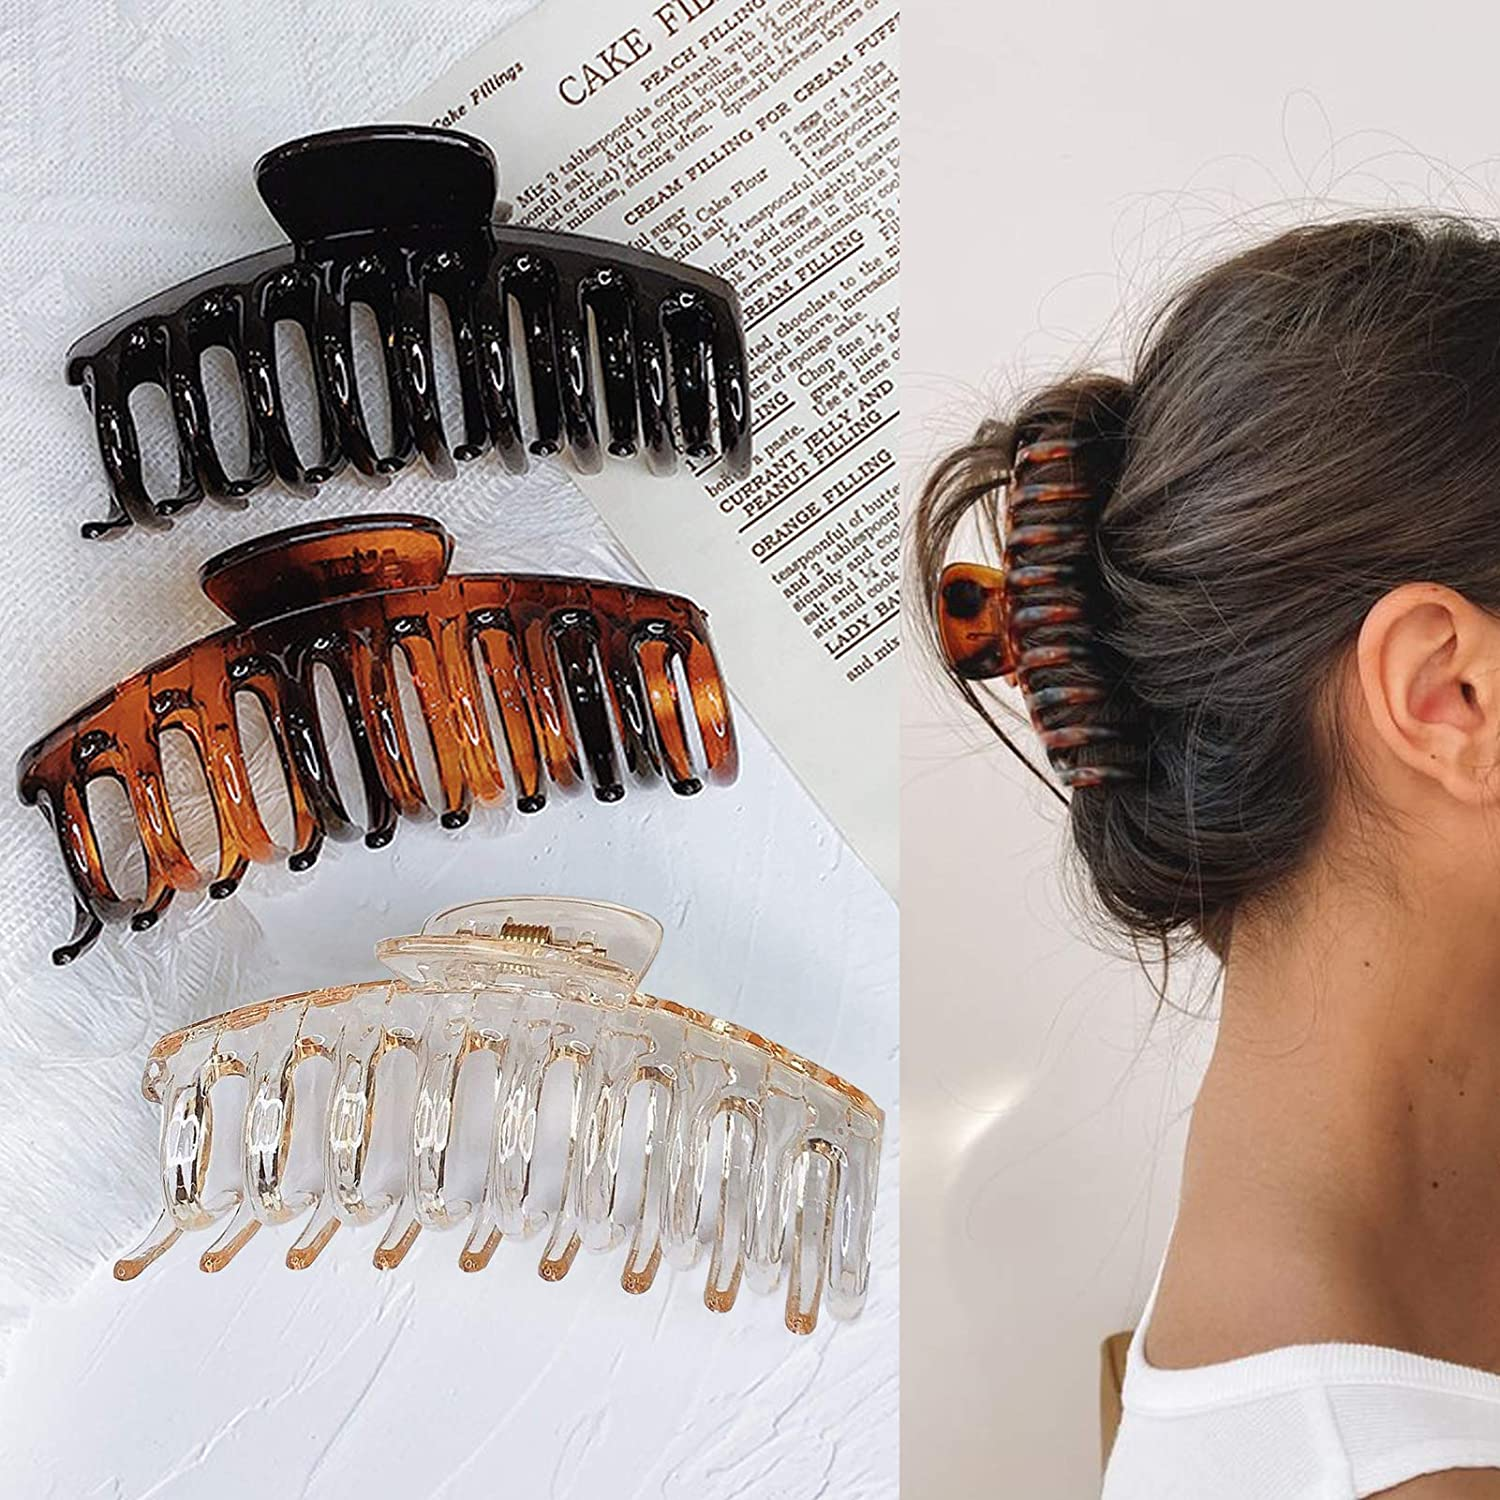 Claw Clip 1PC OR 7PCS SET Large Plastic Hair Claw 5cm AcrylicResin Girls Hairpins Crab Claws Jaw Clamp Hair Jewellery for Women .